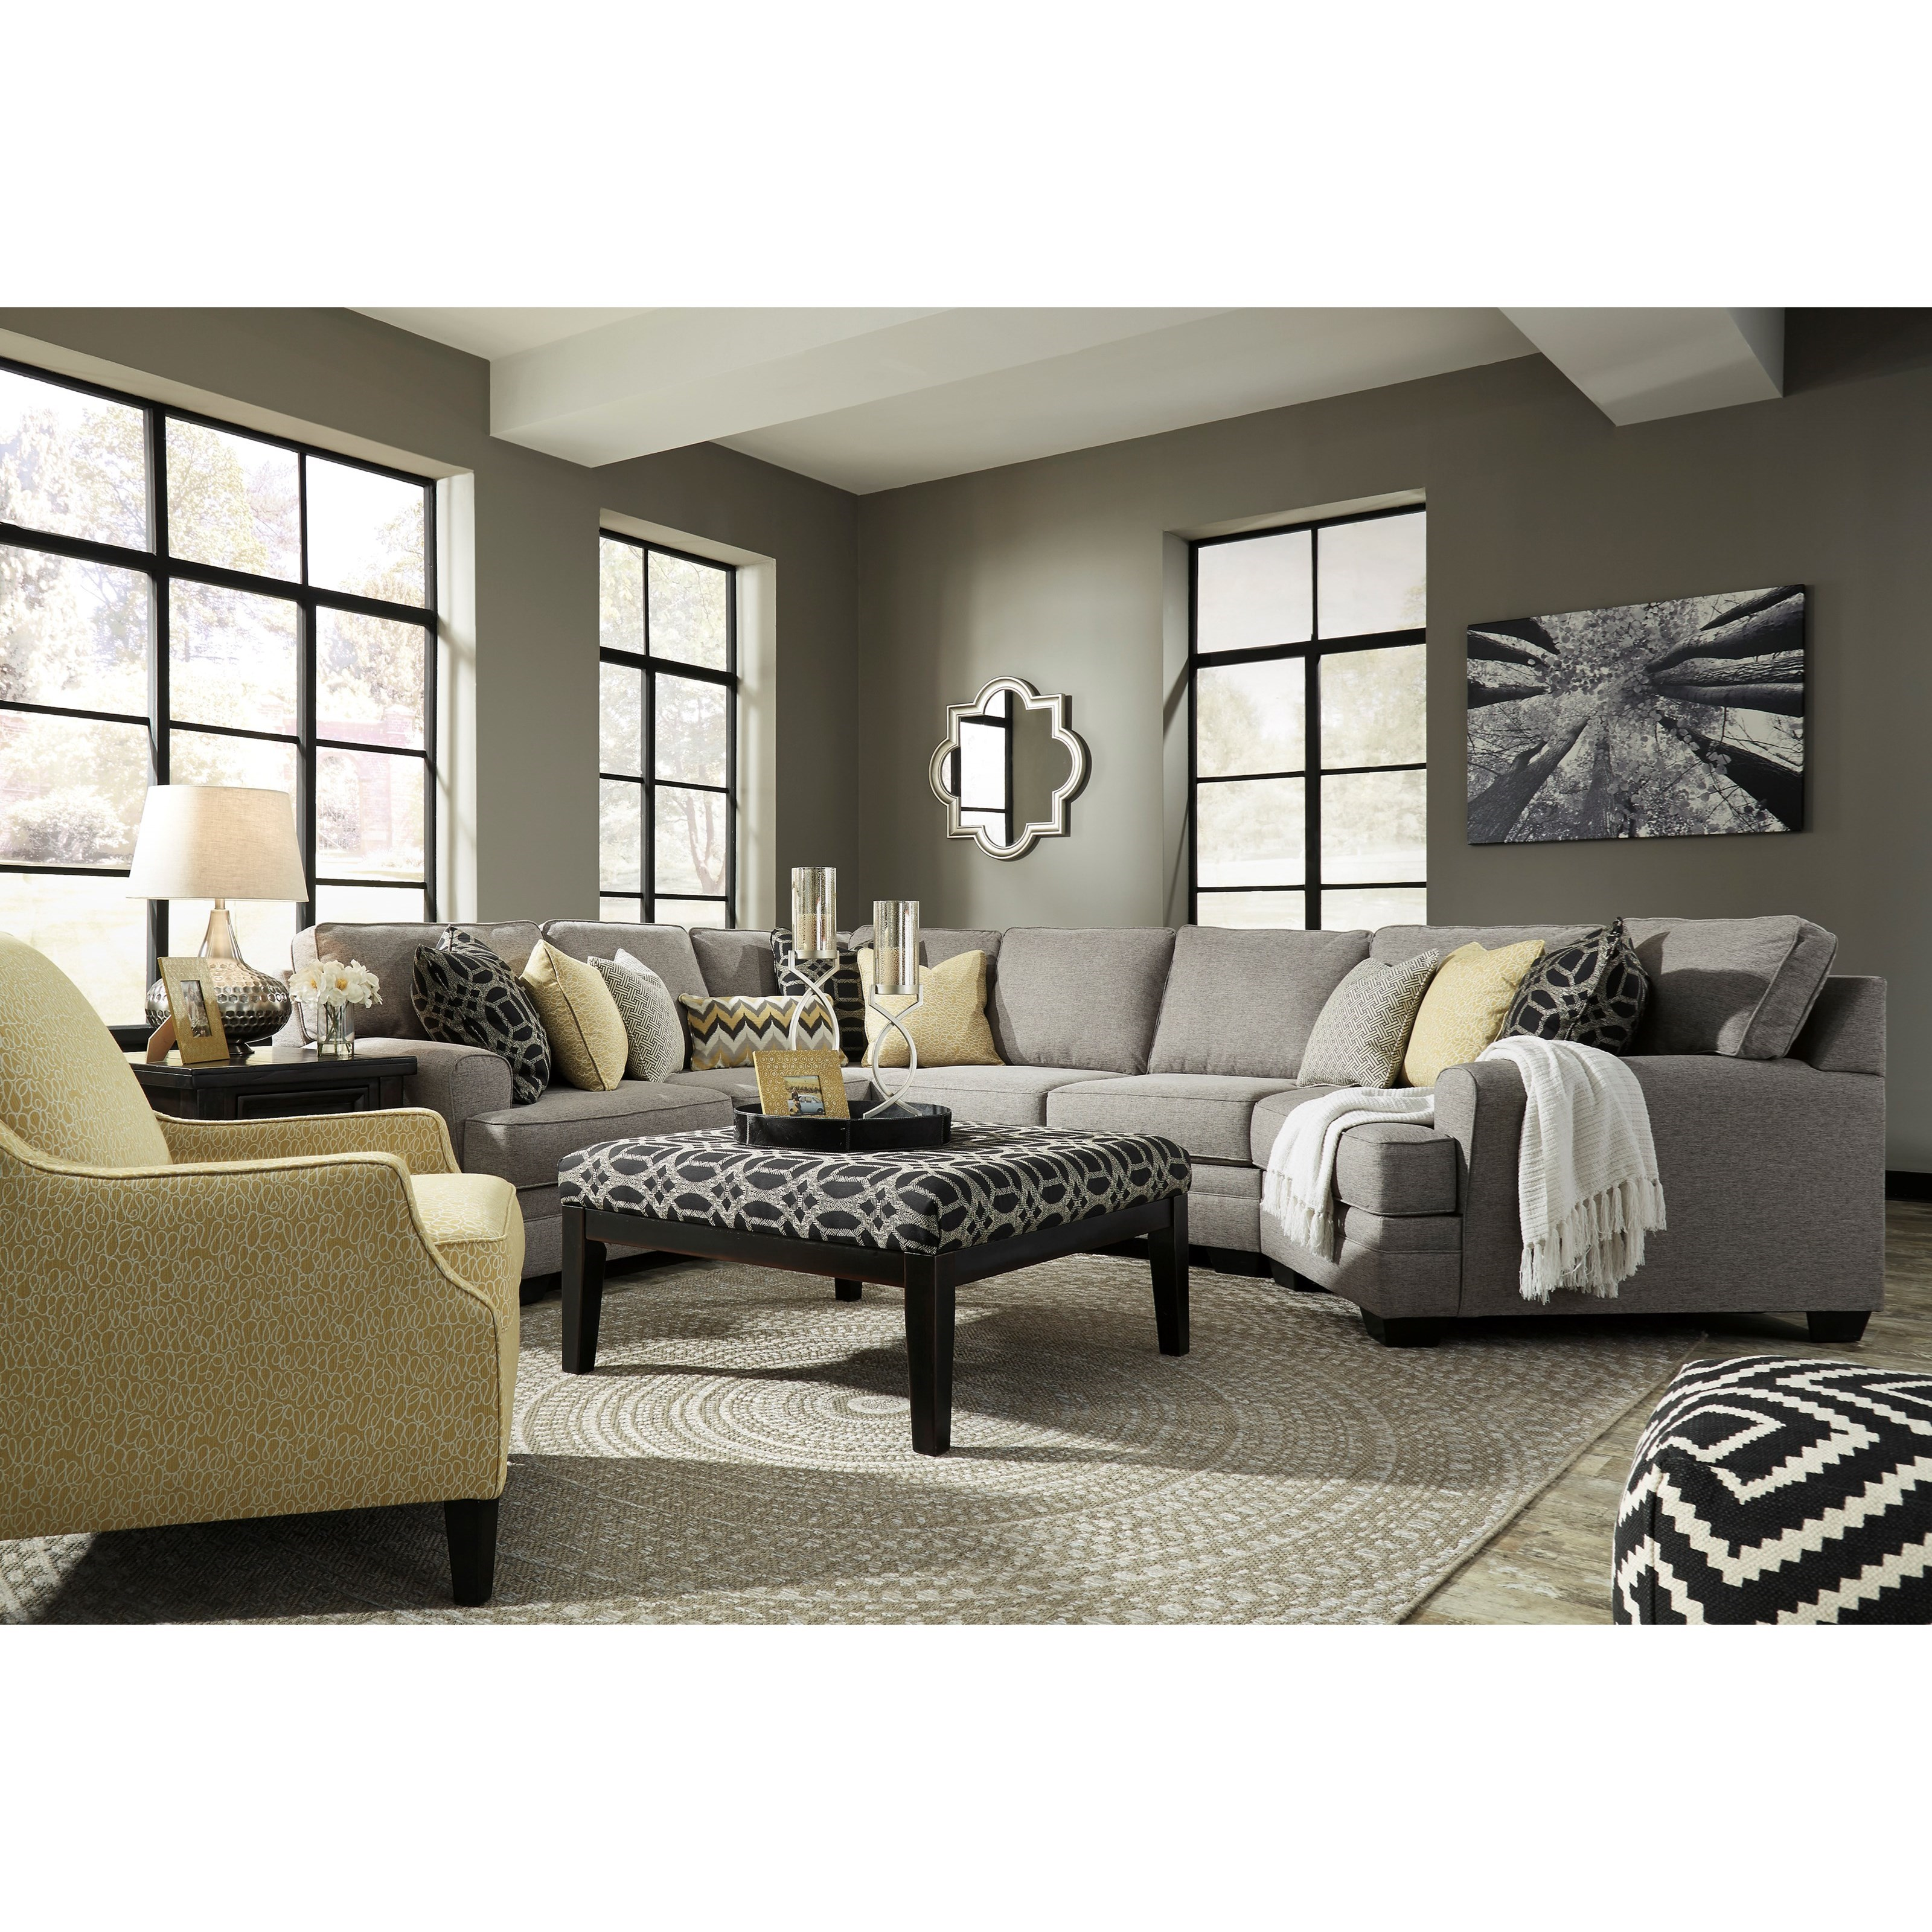 Benchcraft Cresson Stationary Living Room Group - Item Number: 54907 Living Room Group 16